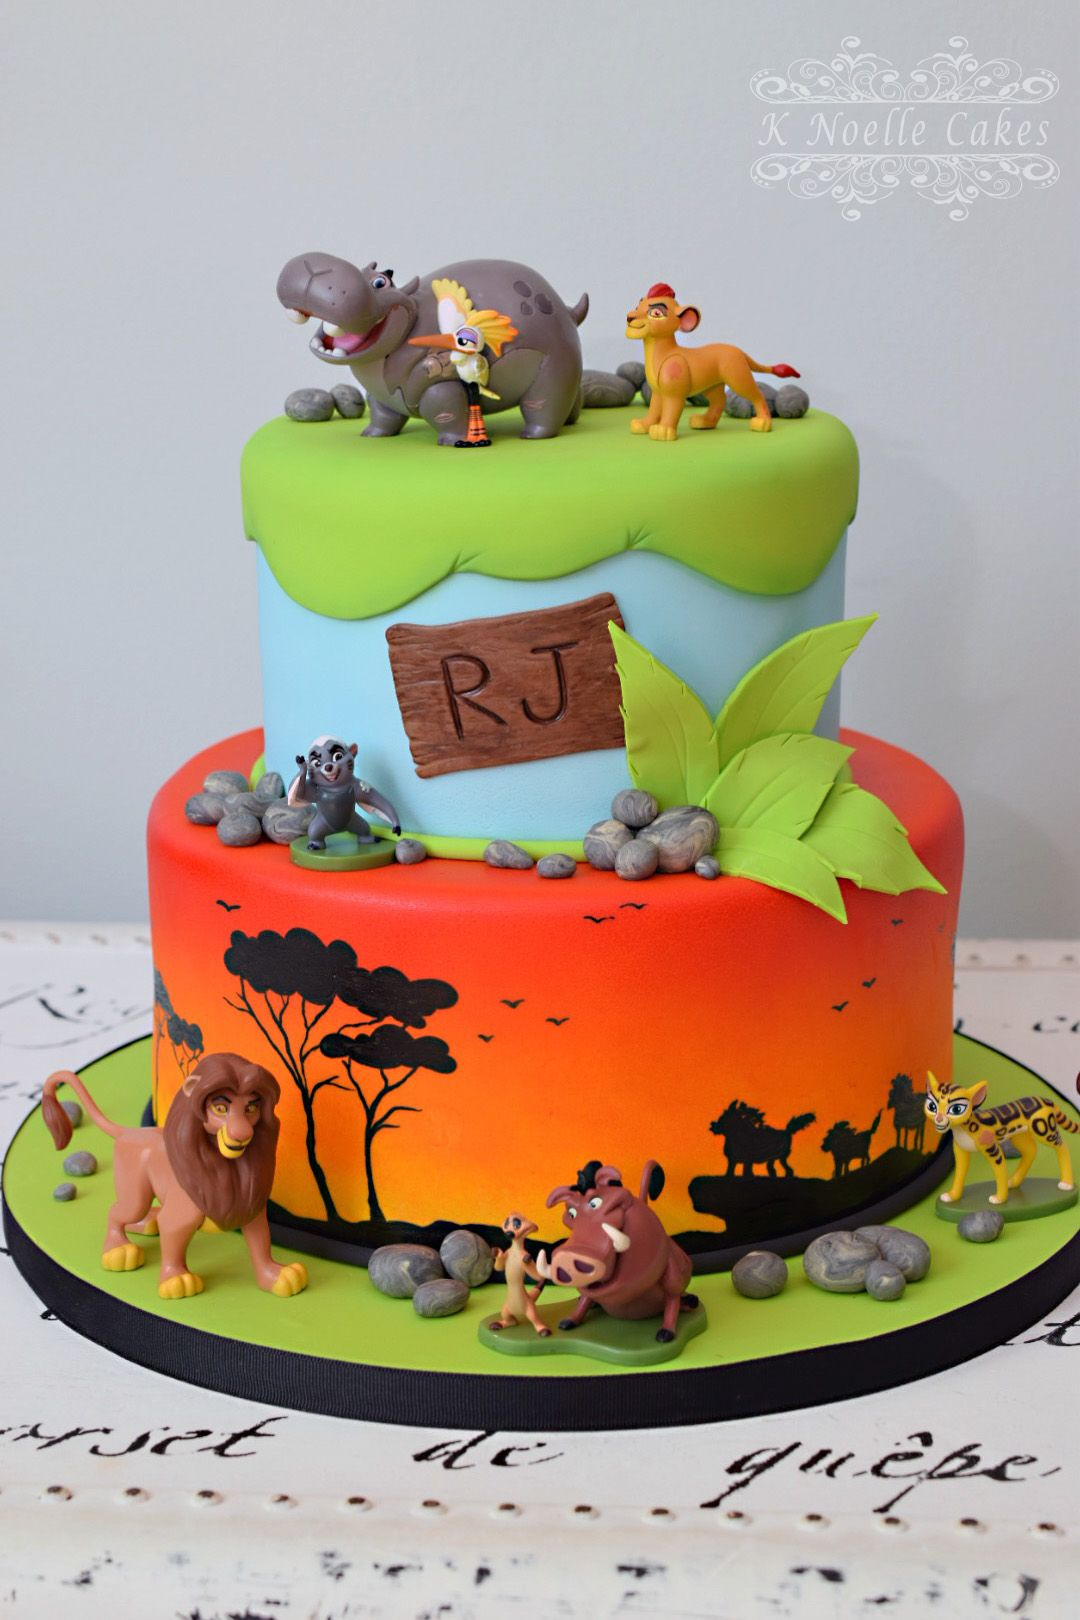 Lion Guard Lion King Theme Cake By K Noelle Cakes Cakes By K